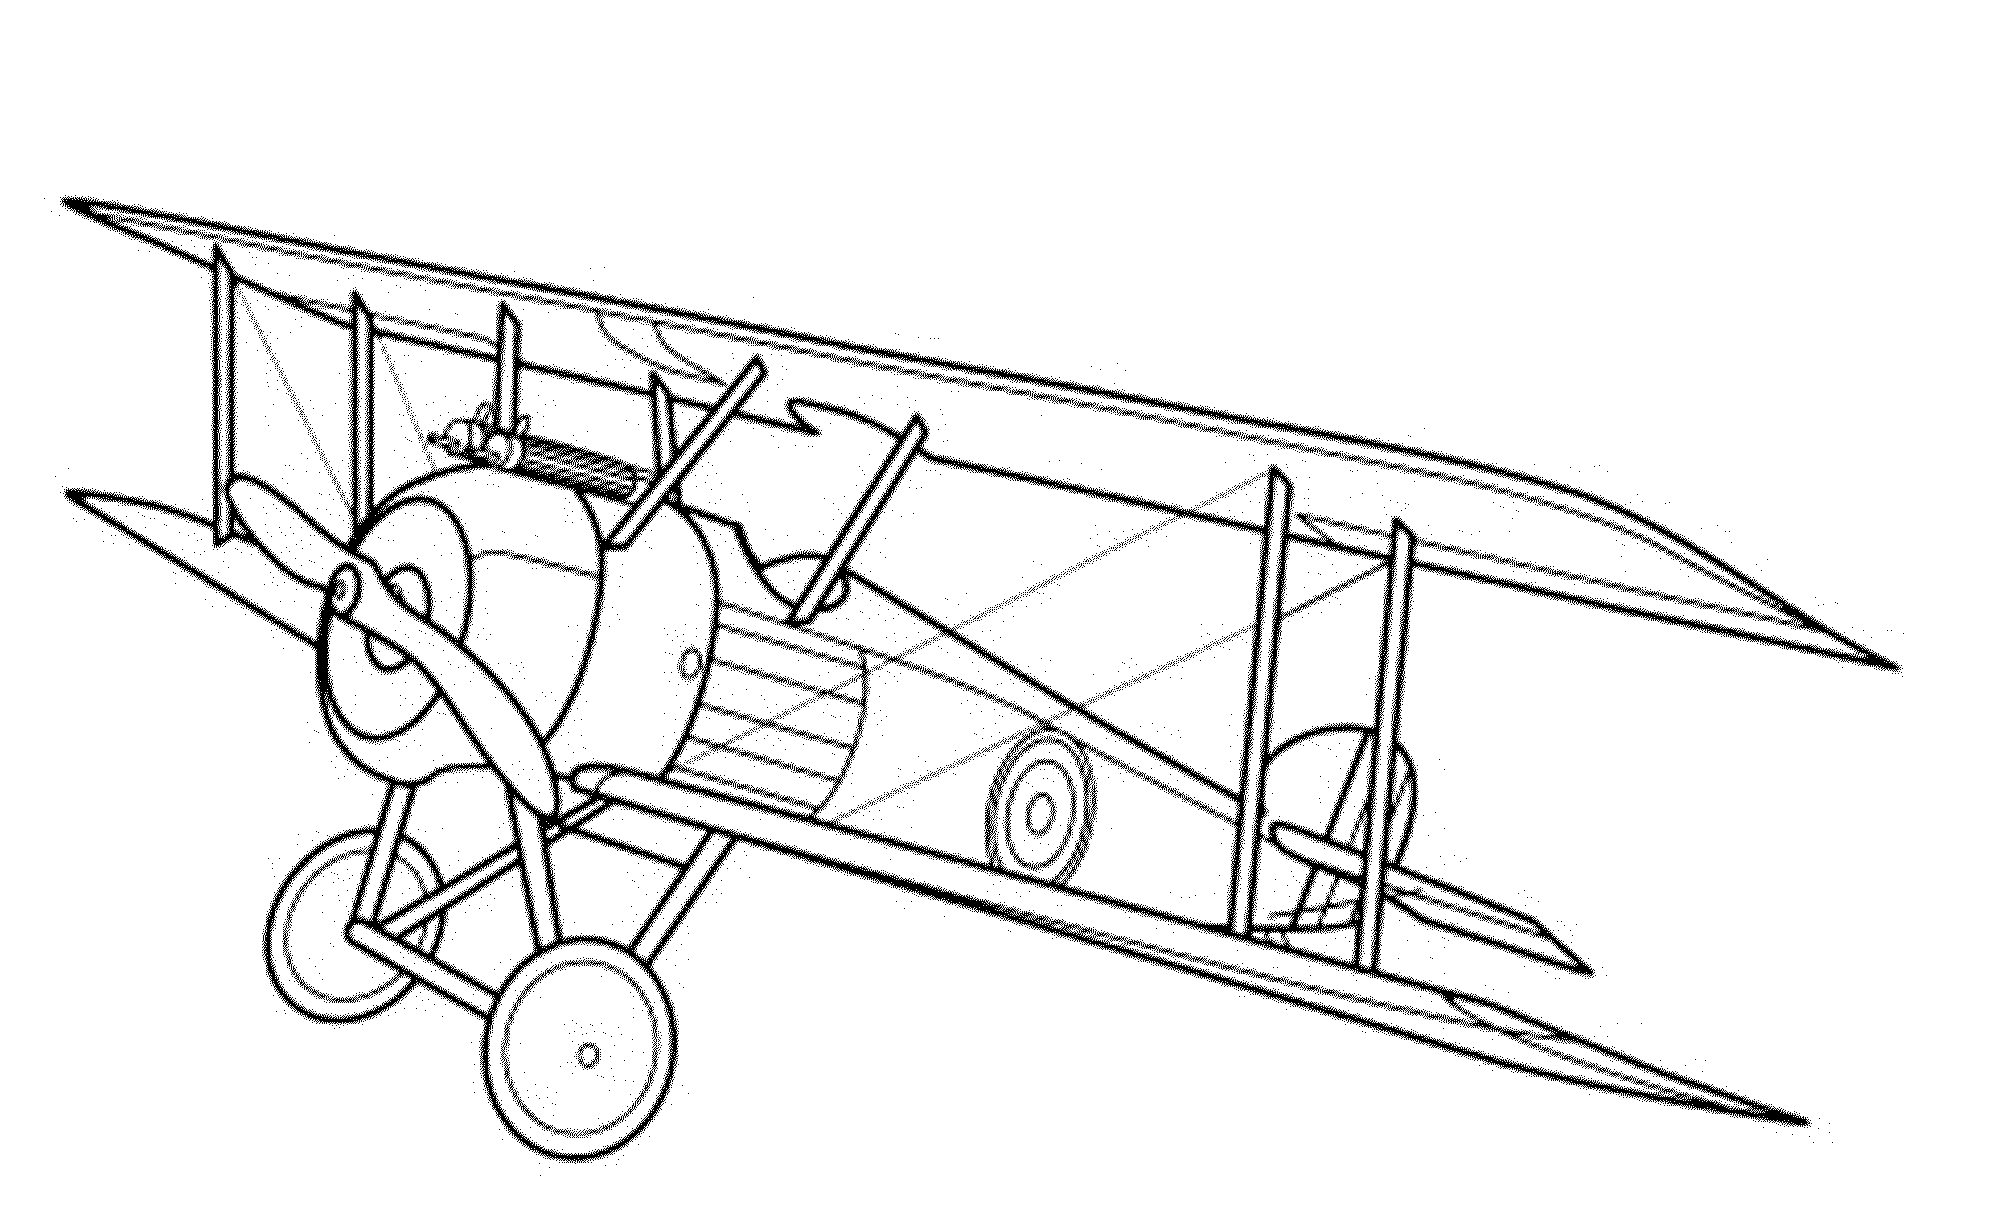 bi plane coloring pages - photo#20